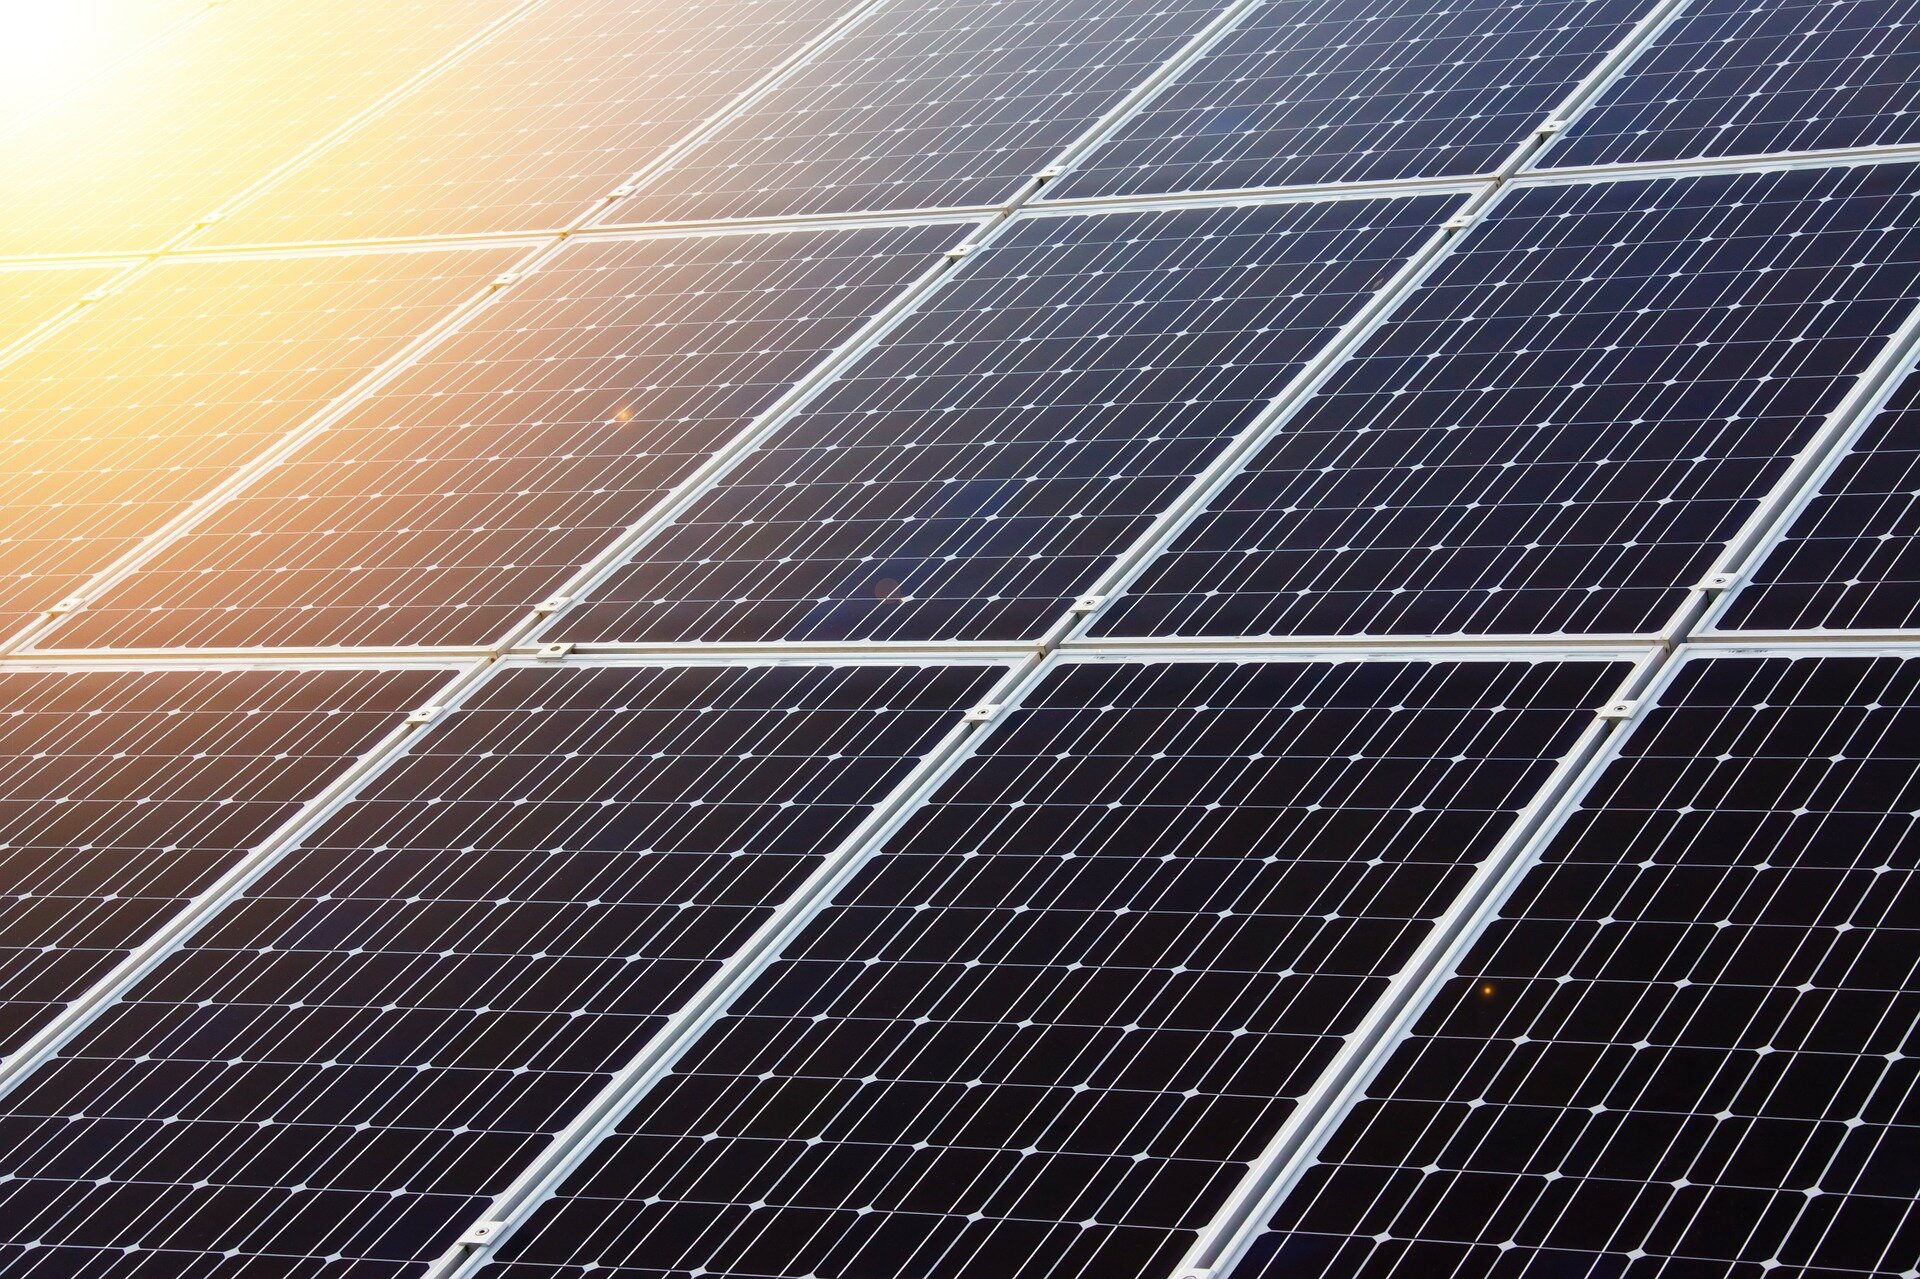 Chill out: Advanced solar tech runs cooler and lasts longer